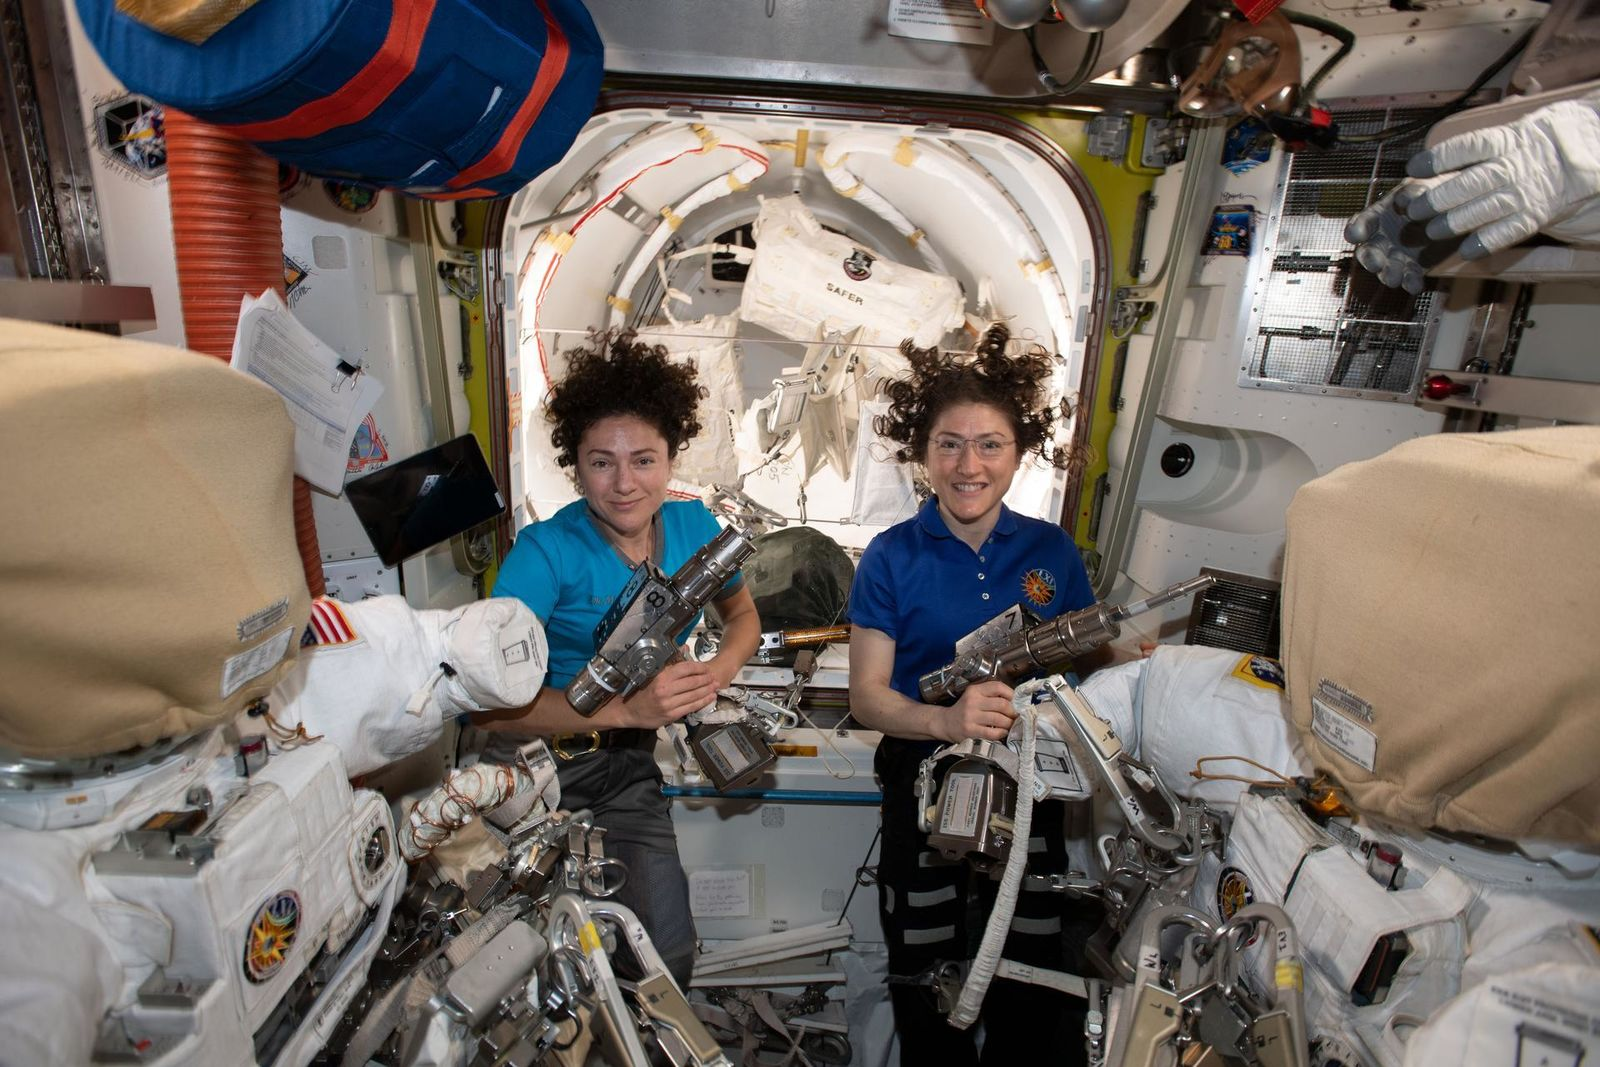 NASA astronauts Jessica Meir (left) and Christina Koch are inside the Quest airlock preparing the U.S. spacesuits and tools they will use on their first spacewalk together. The Expedition 61 flight engineers are holding the pistol grip tools they will use to swap out a failed power controller, also known as a battery charge-discharge unit, that regulates the charge to batteries that collect and distribute power to the International Space Station. (NASA)